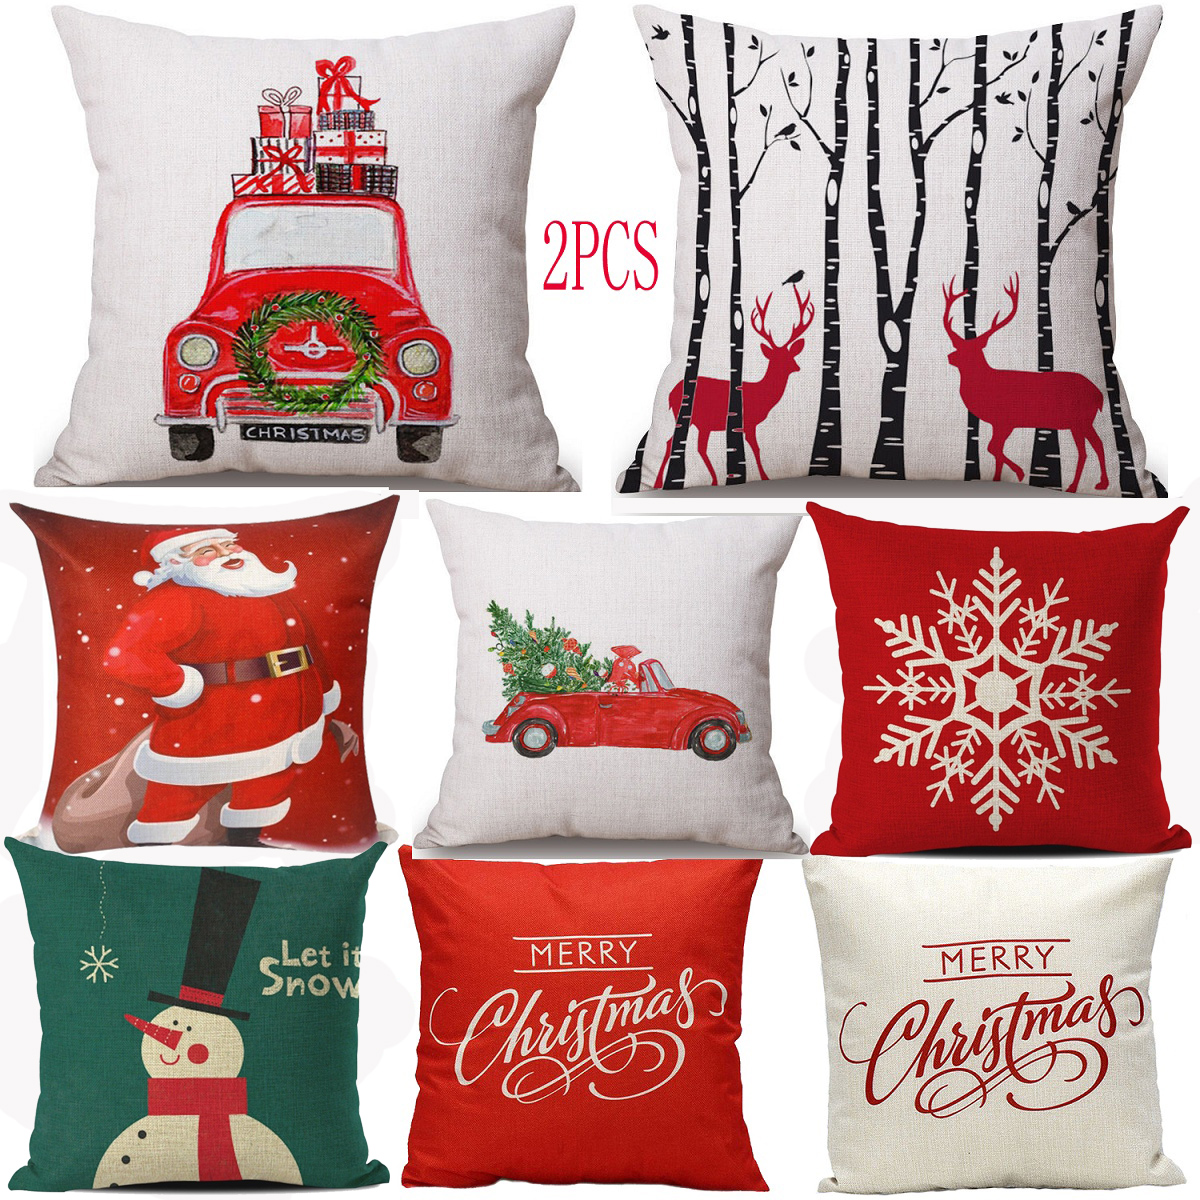 2pc christmas throw pillow covers cases pillowcase for couch sofa snowman santa - Christmas Decorative Pillow Covers